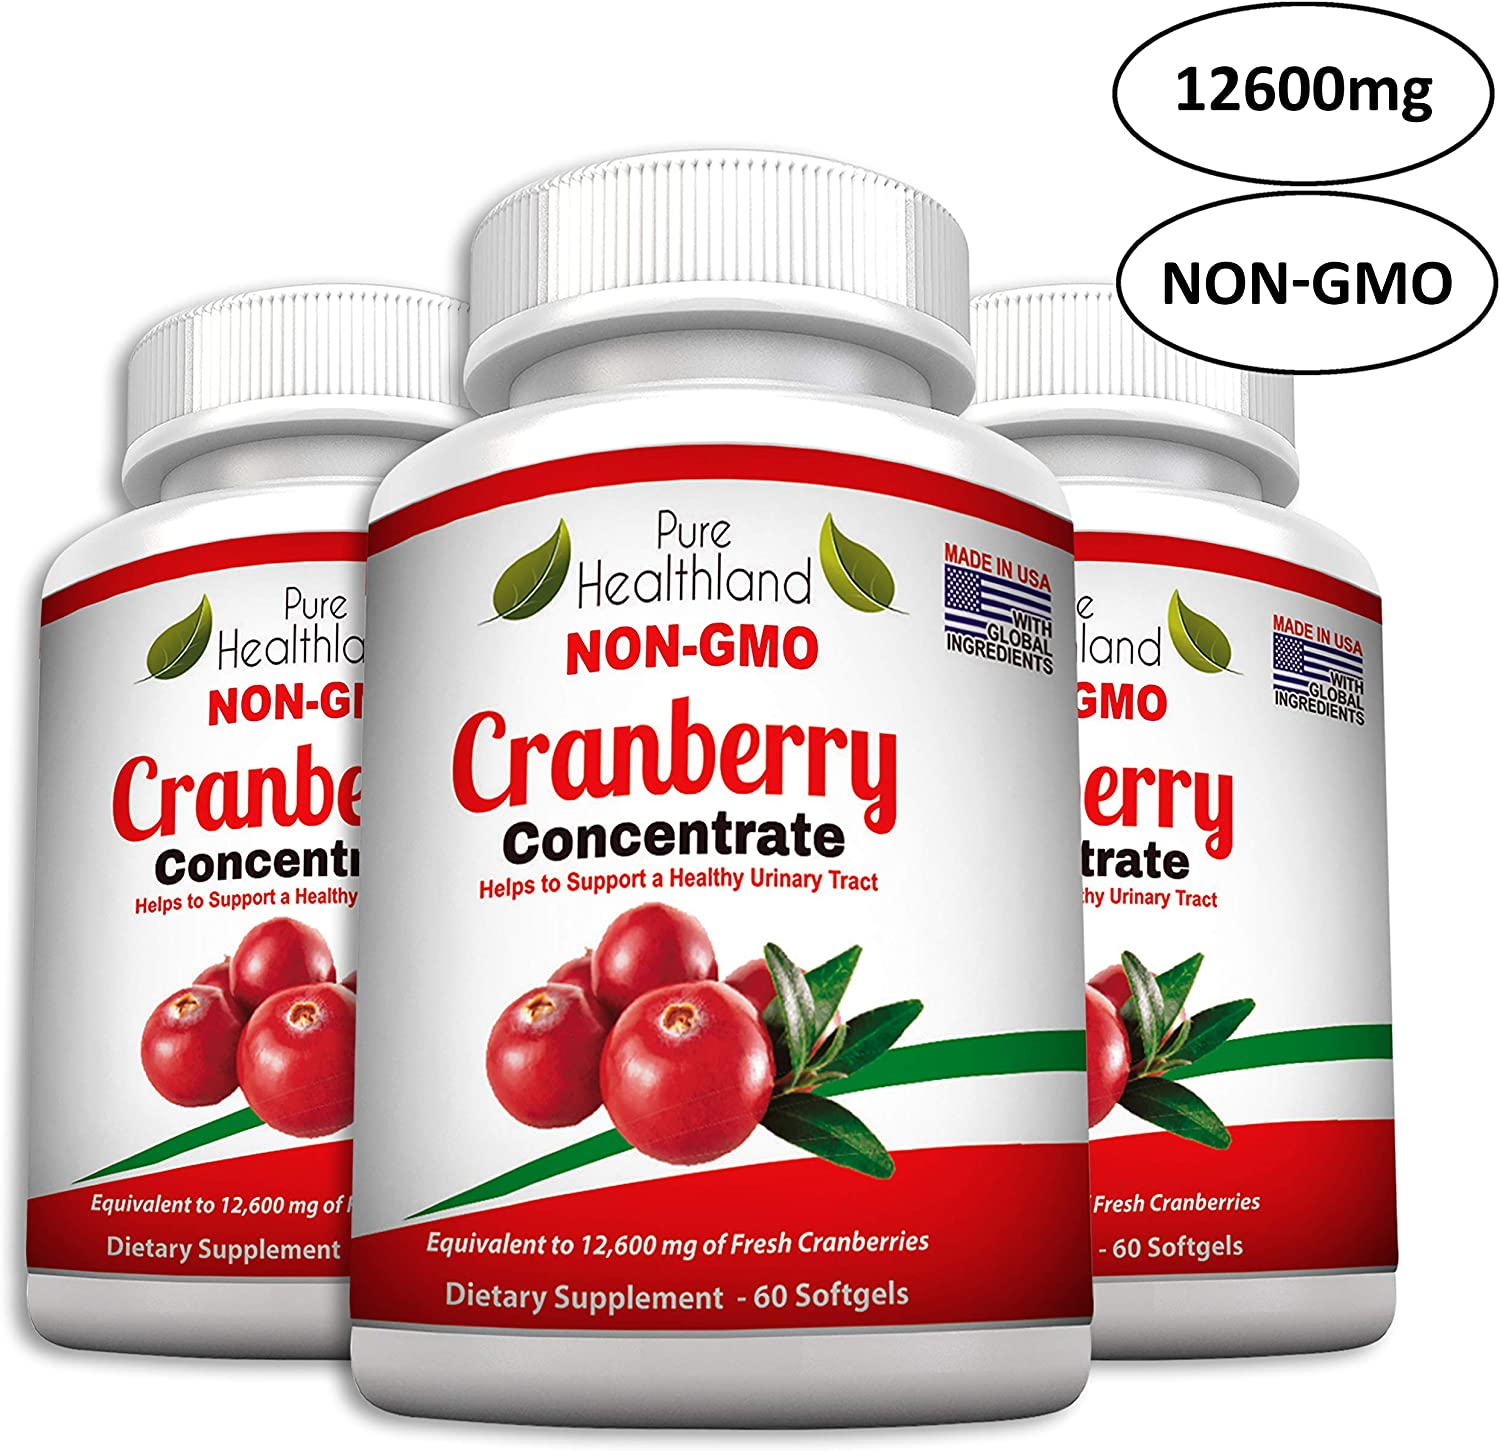 Non GMO Cranberry Concentrate Supplement Pills for Urinary Tract Infection UTI. Equals 12600mg Cranberries. Triple Strength Kidney Bladder Health for Men Women. Easy to Swallow Softgels, 3 Bottles